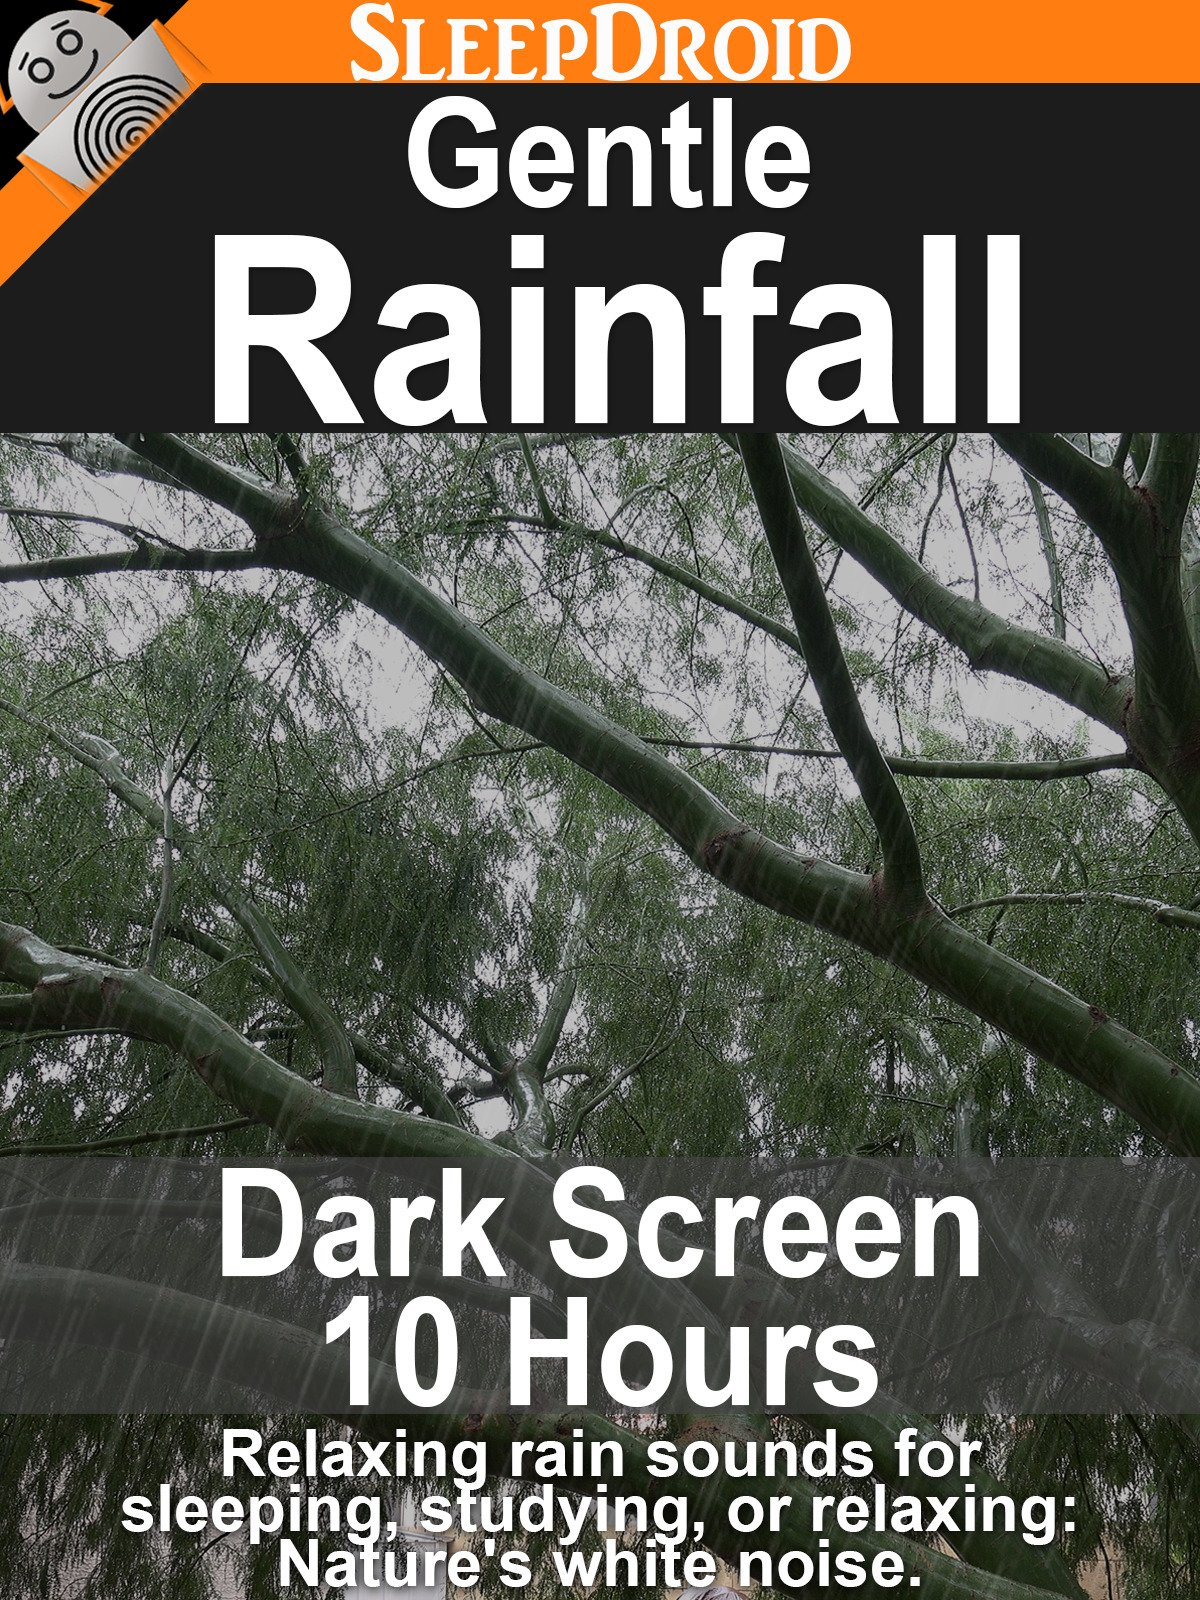 Gentle Rainfall: Dark Screen 10 hours of Relaxing Rain Sounds for Sleeping, Studying, or Relaxing: Nature's White Noise.